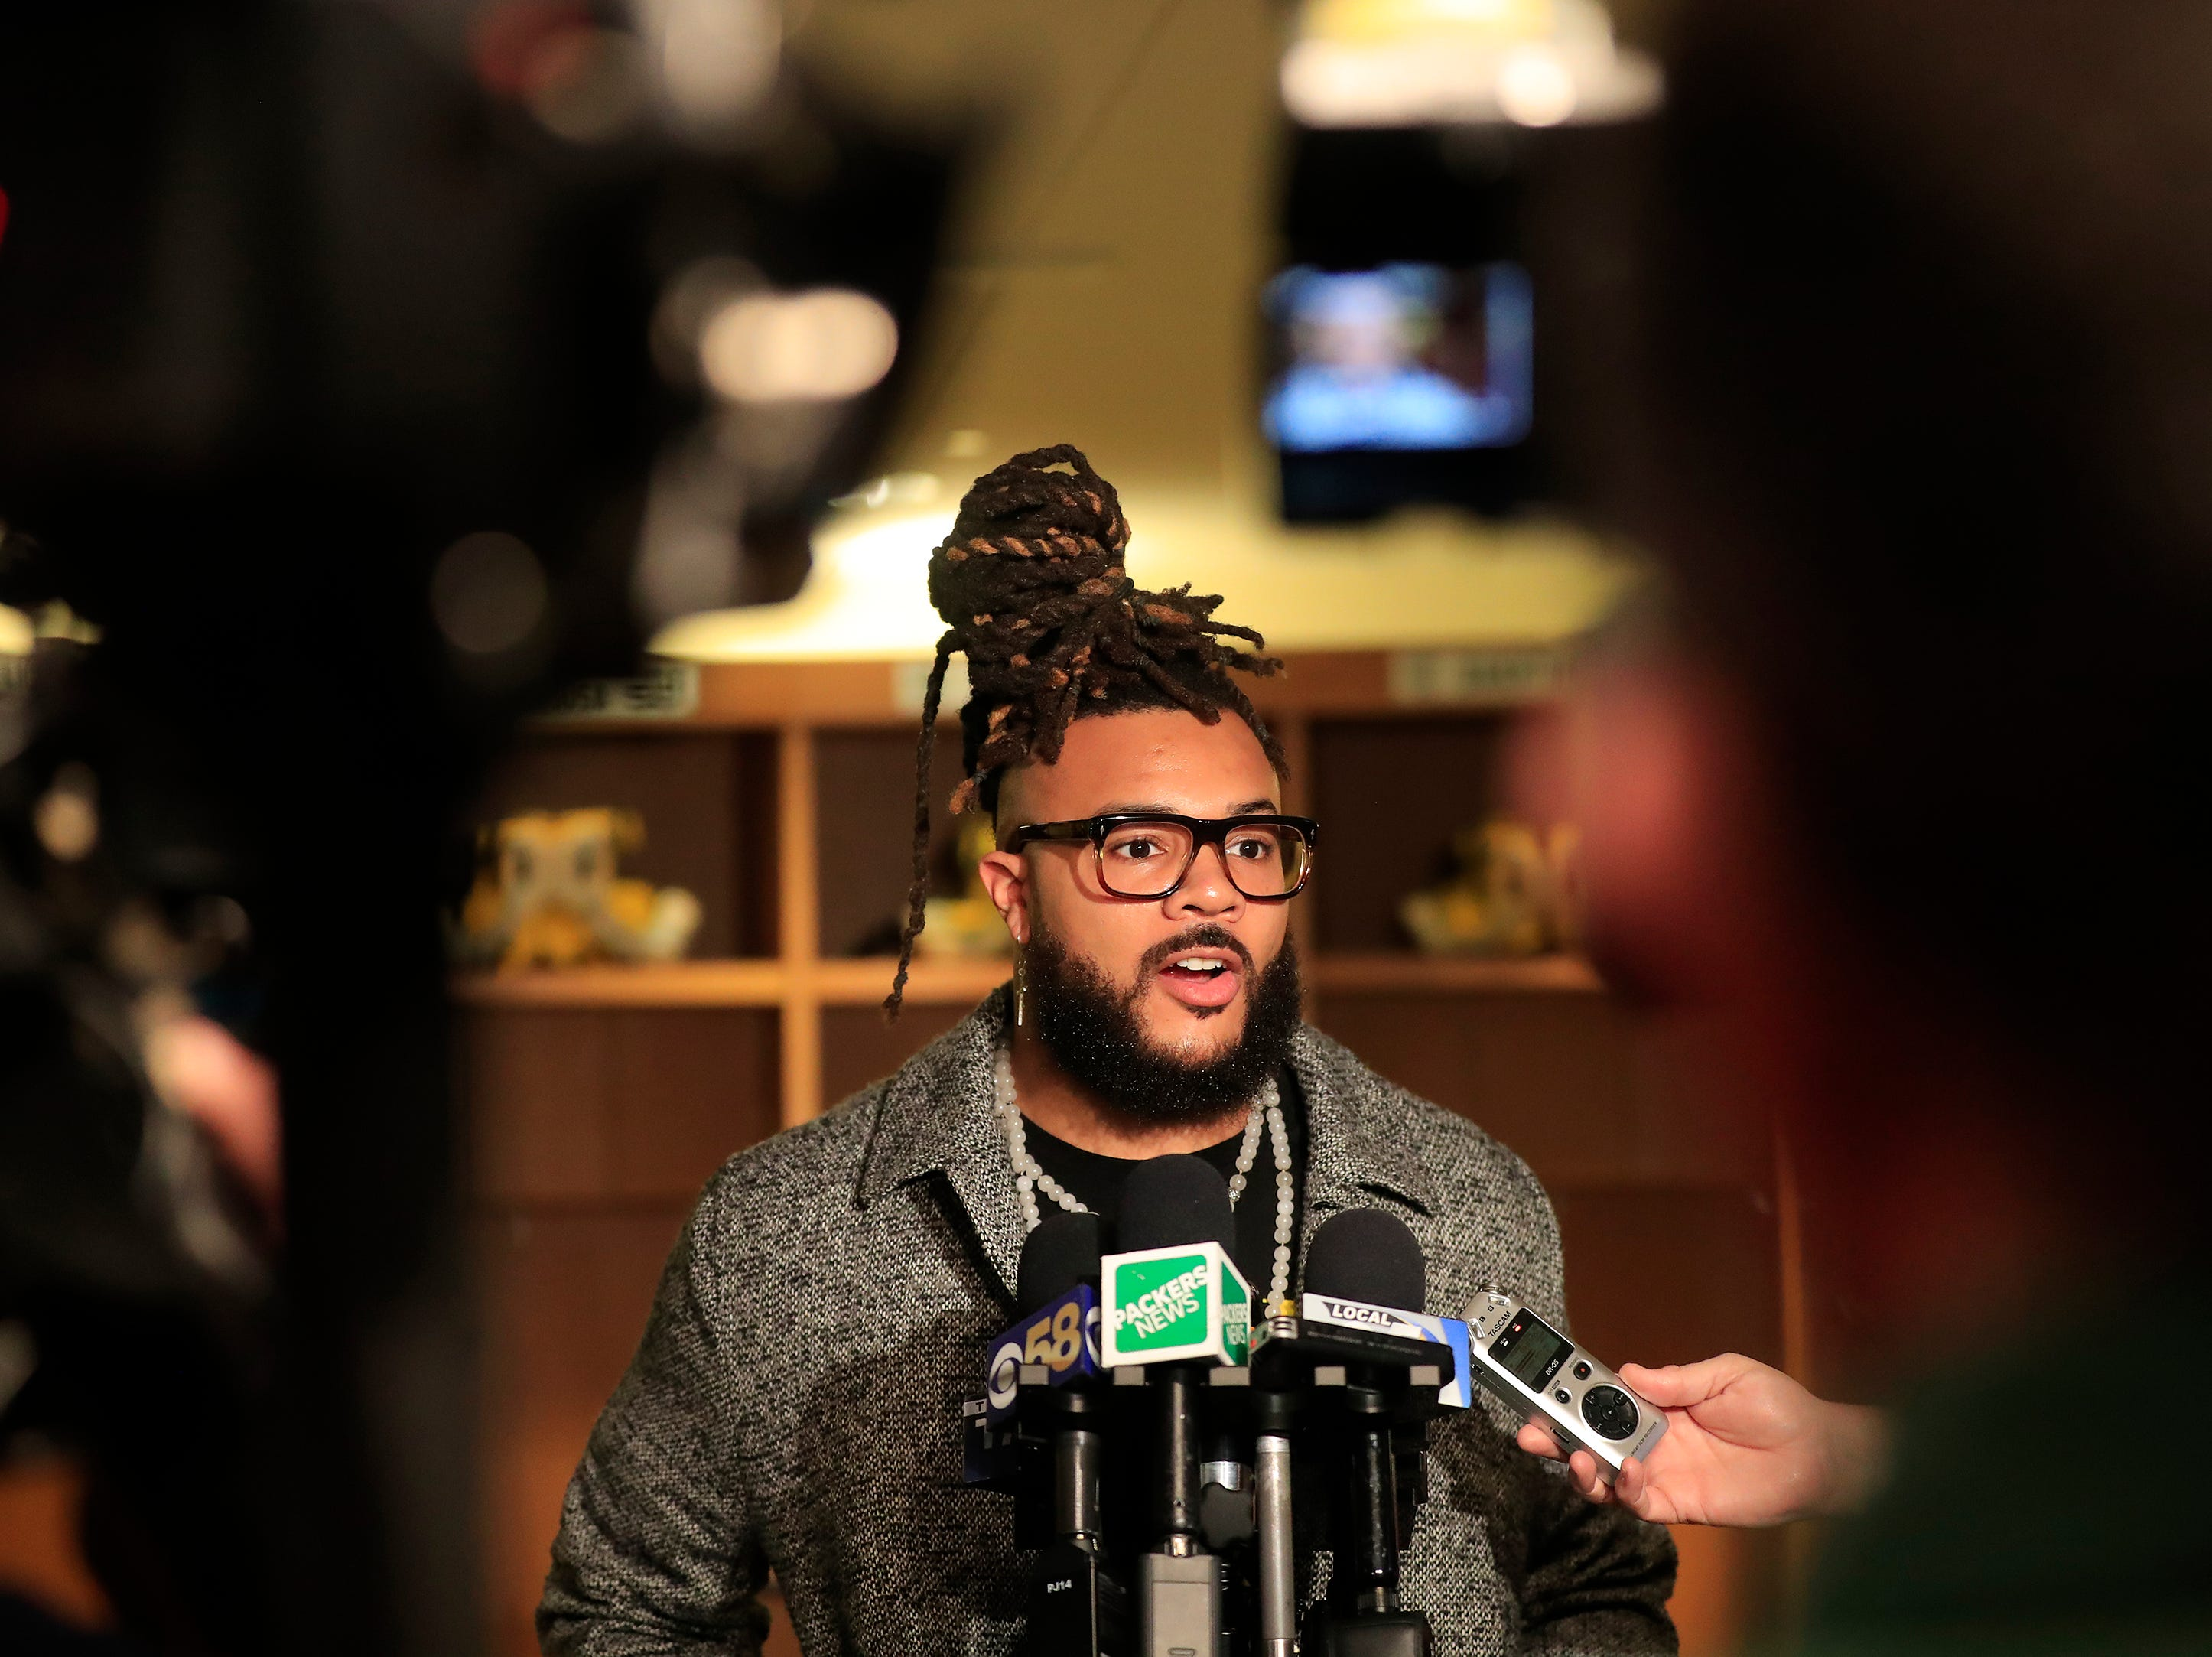 Green Bay Packers lineman Billy Turner talks to members of the media at Lambeau Field on Thursday, March 14, 2019 in Green Bay, Wis.